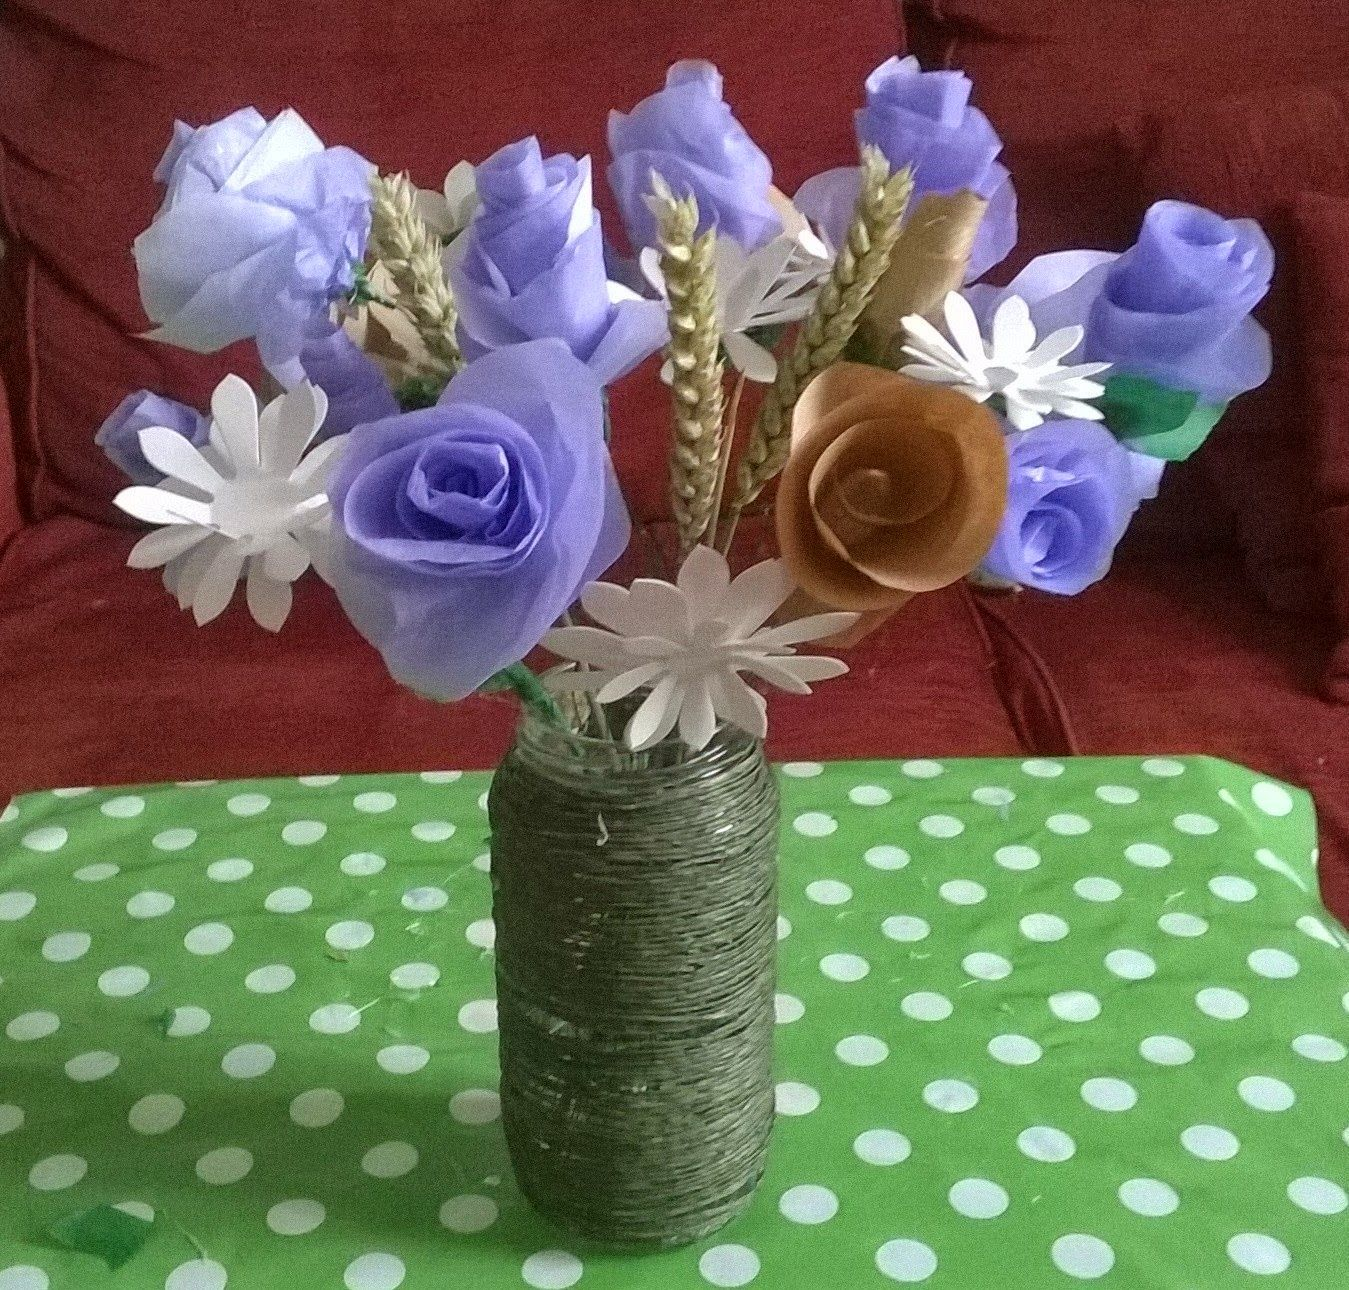 Big Blue Bed: A Country Paper Flower Bouquet - Tutorial | Things I ...